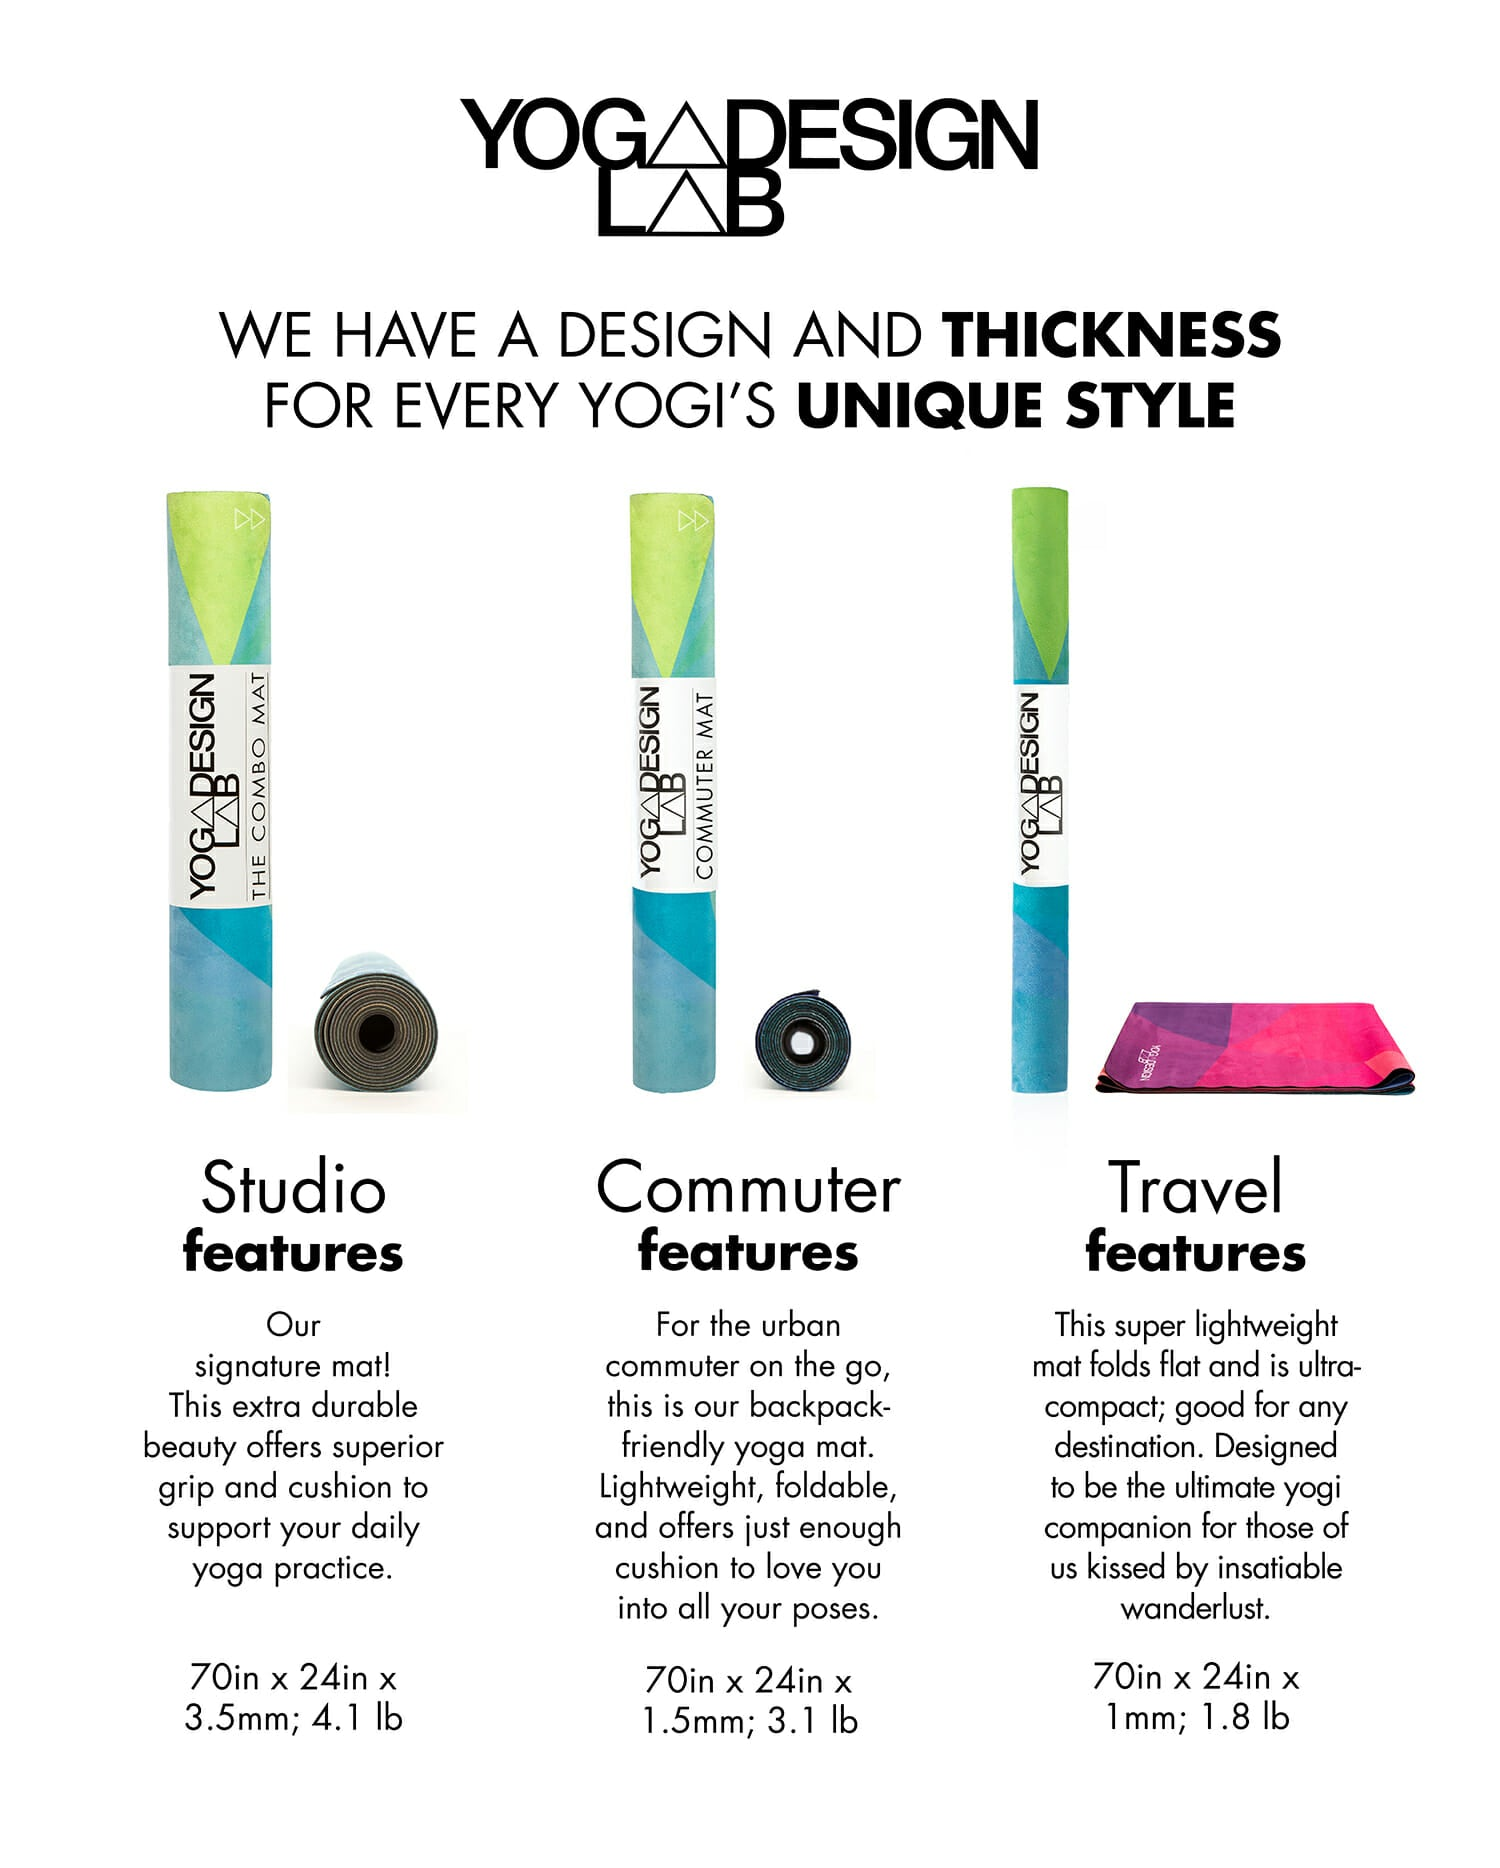 'Commuter yoga mat' - different designs and colors